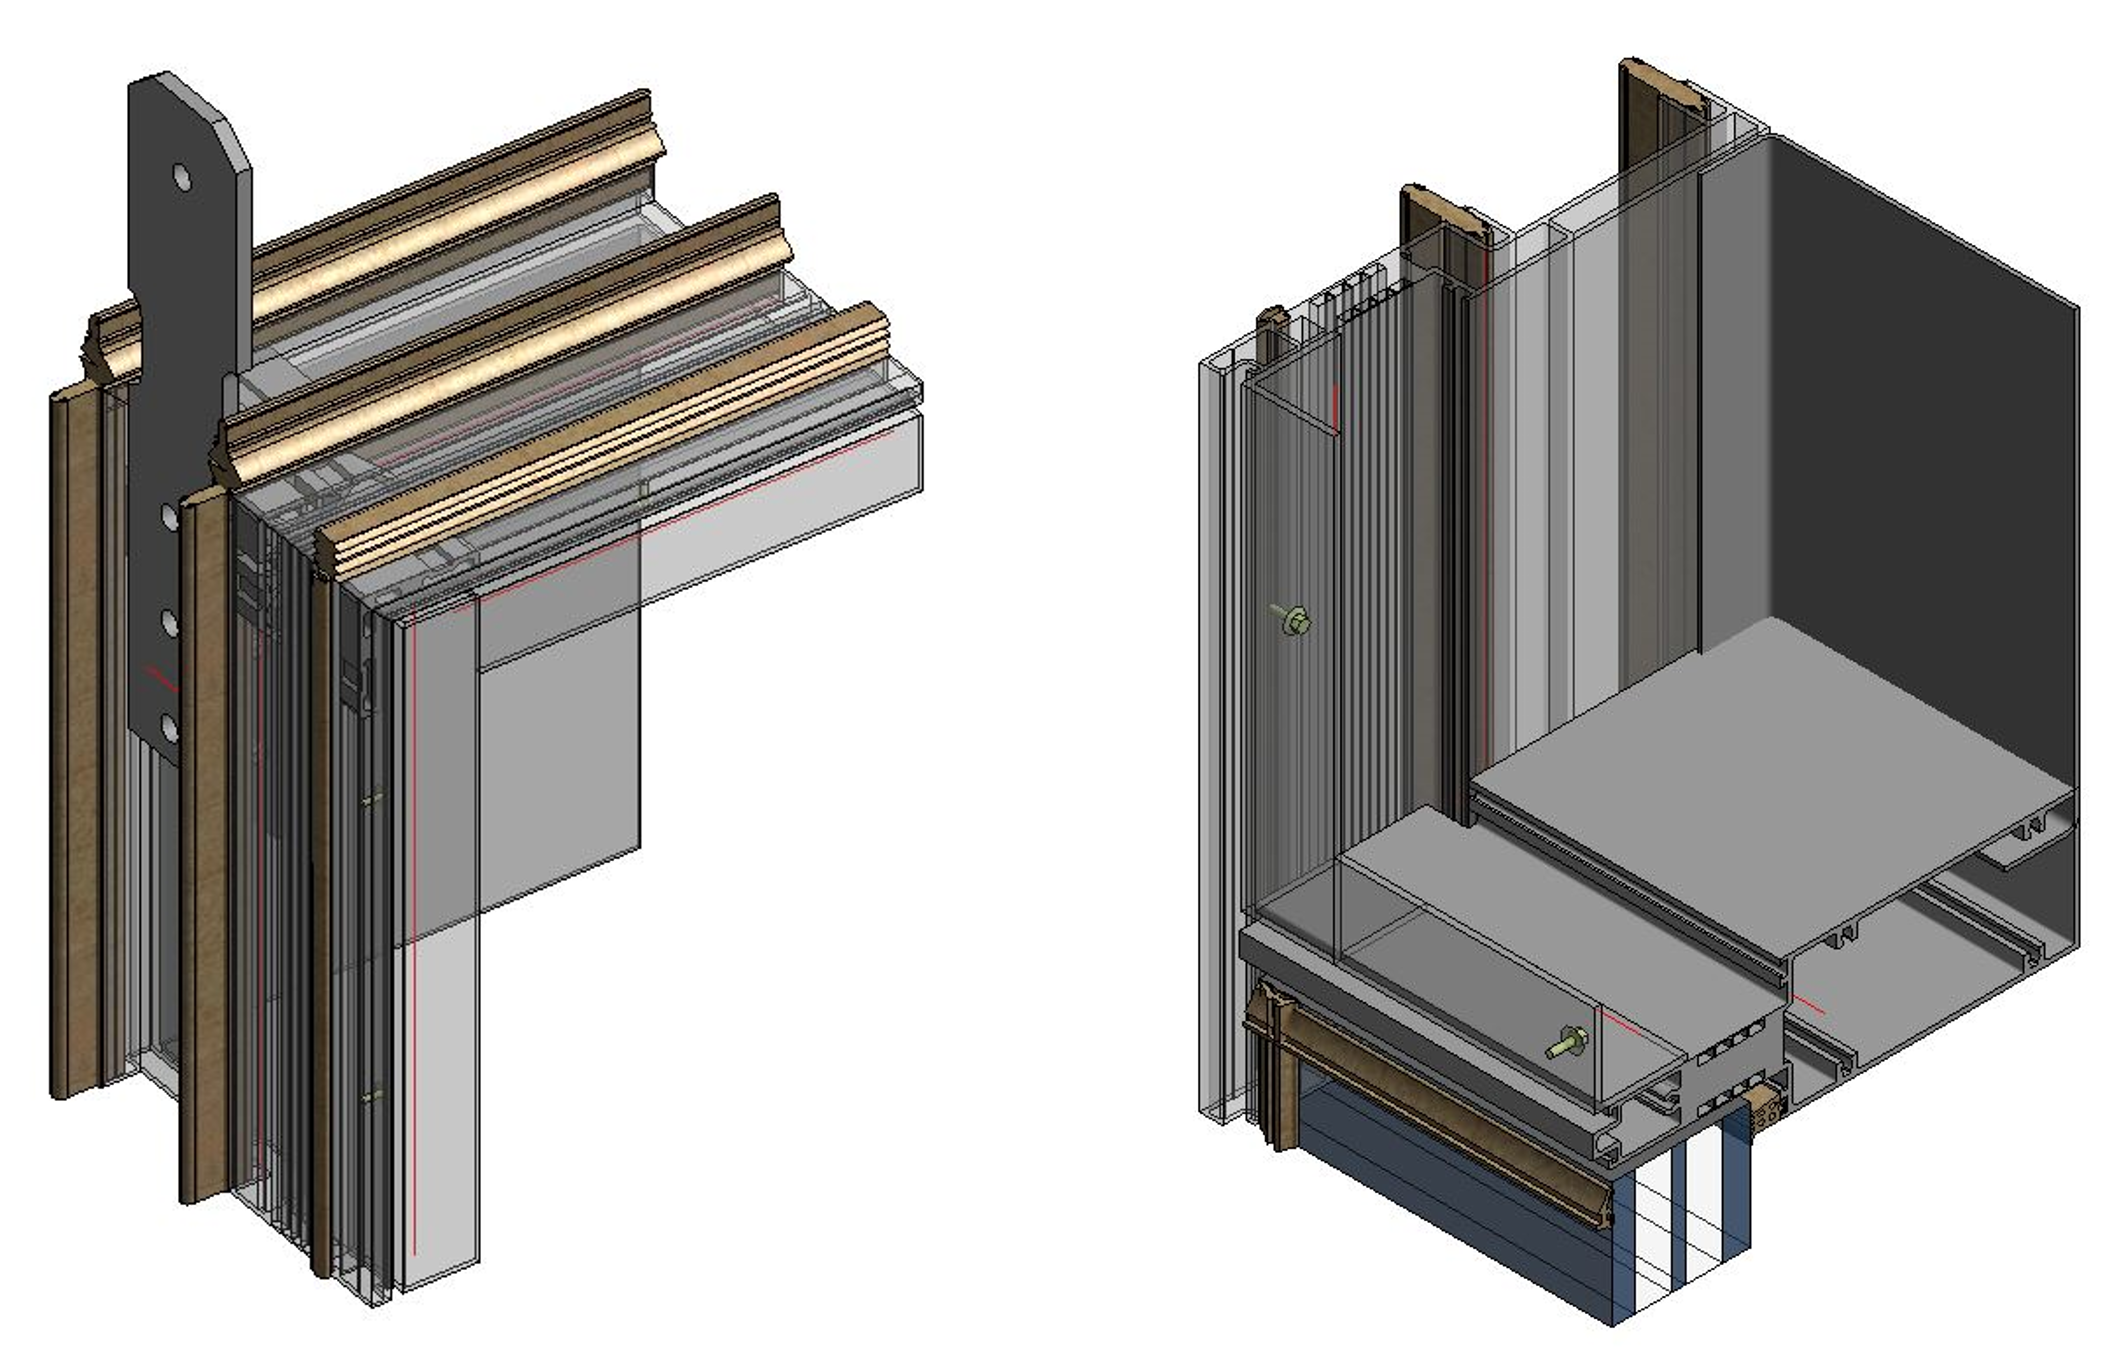 details of window glass holders of facades modeled in Autodesk Revit using AGACAD Curtain Walls and Panels BIM design software